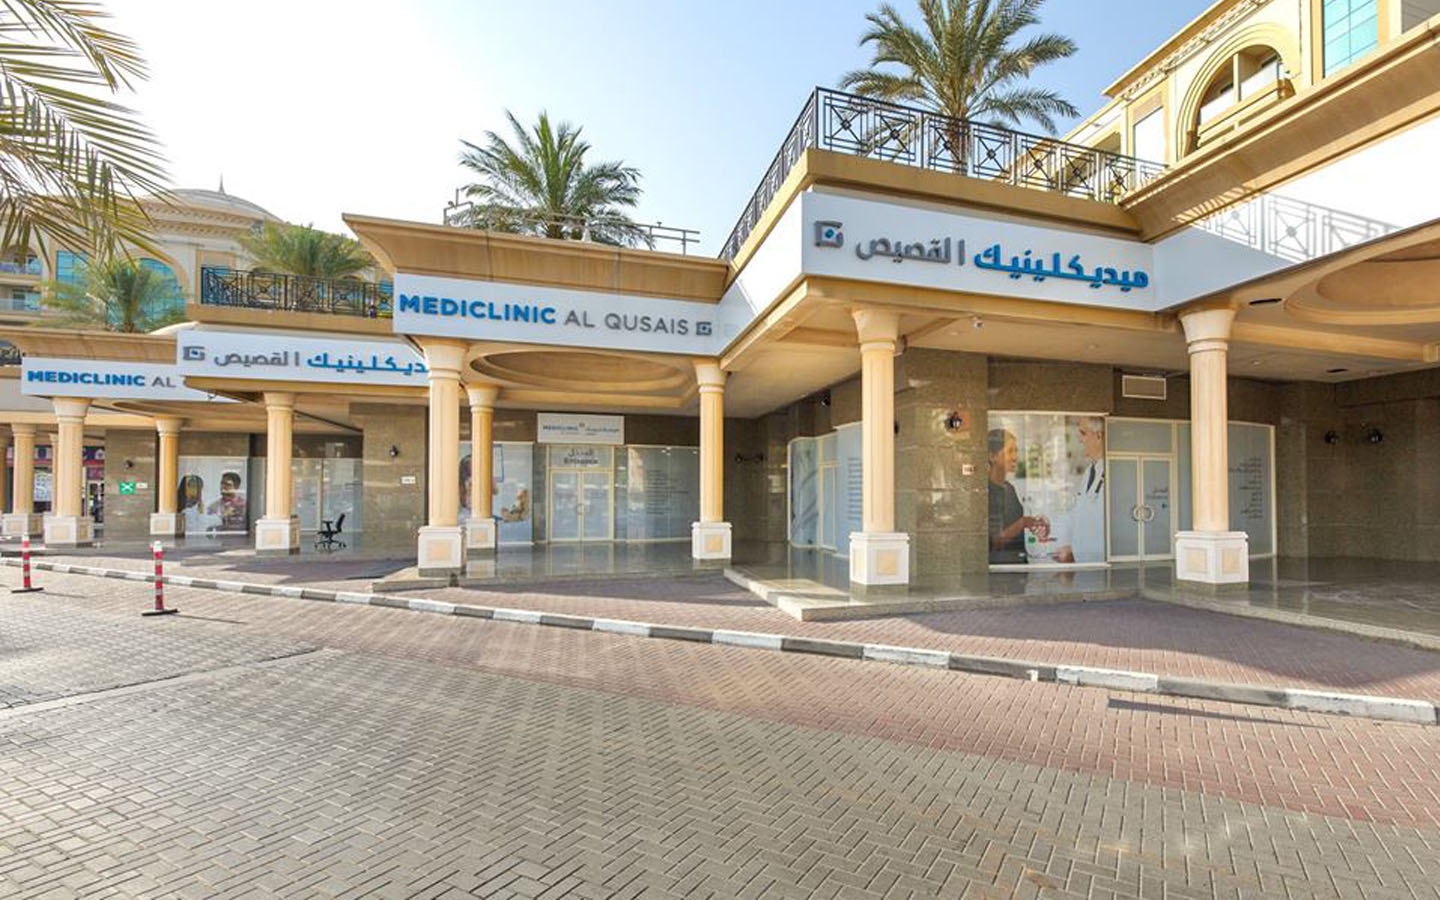 Entrance to Mediclinic